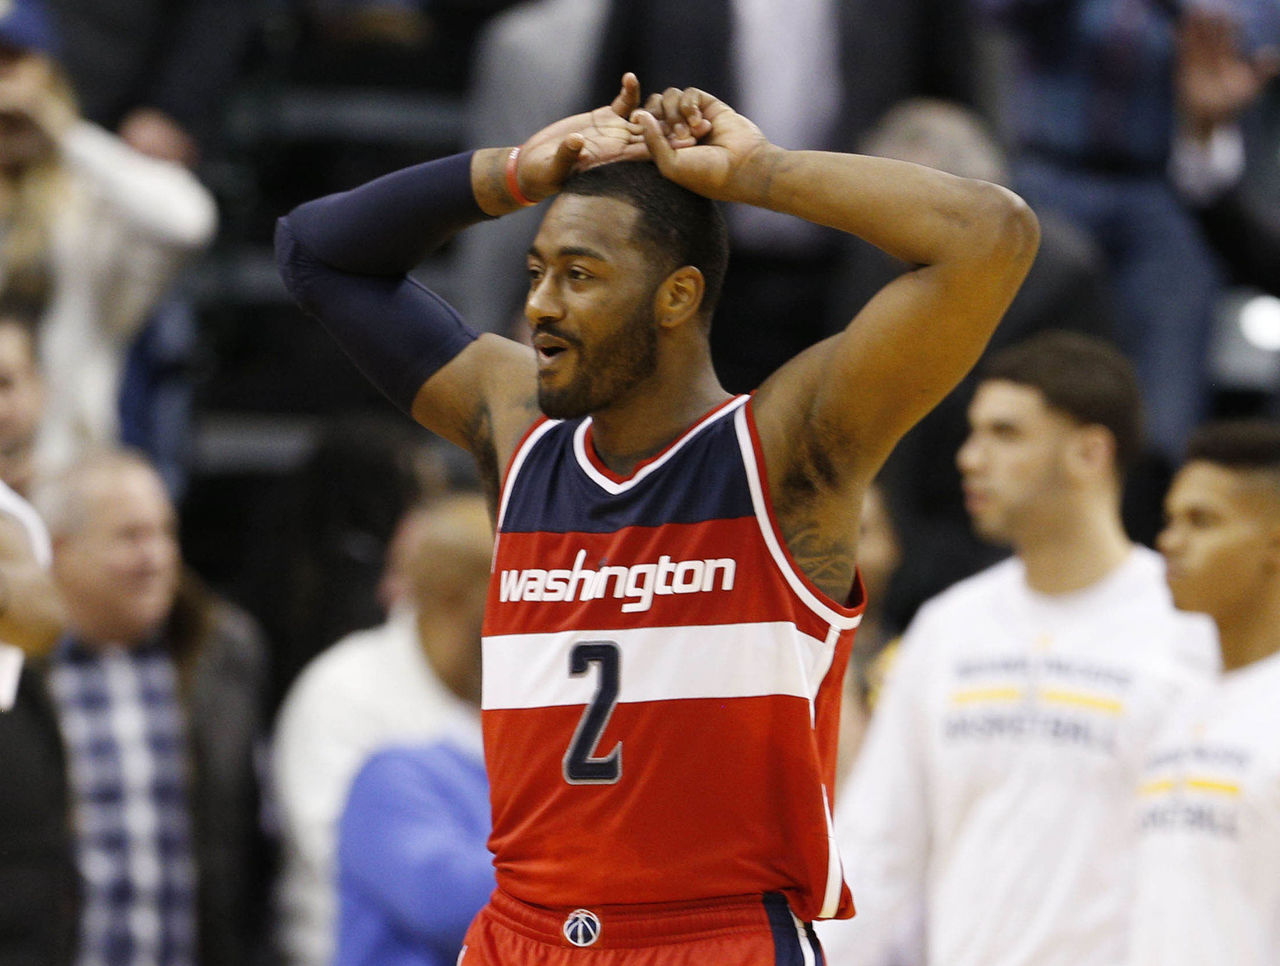 Cropped_2016-12-20t031424z_1110602581_nocid_rtrmadp_3_nba-washington-wizards-at-indiana-pacers